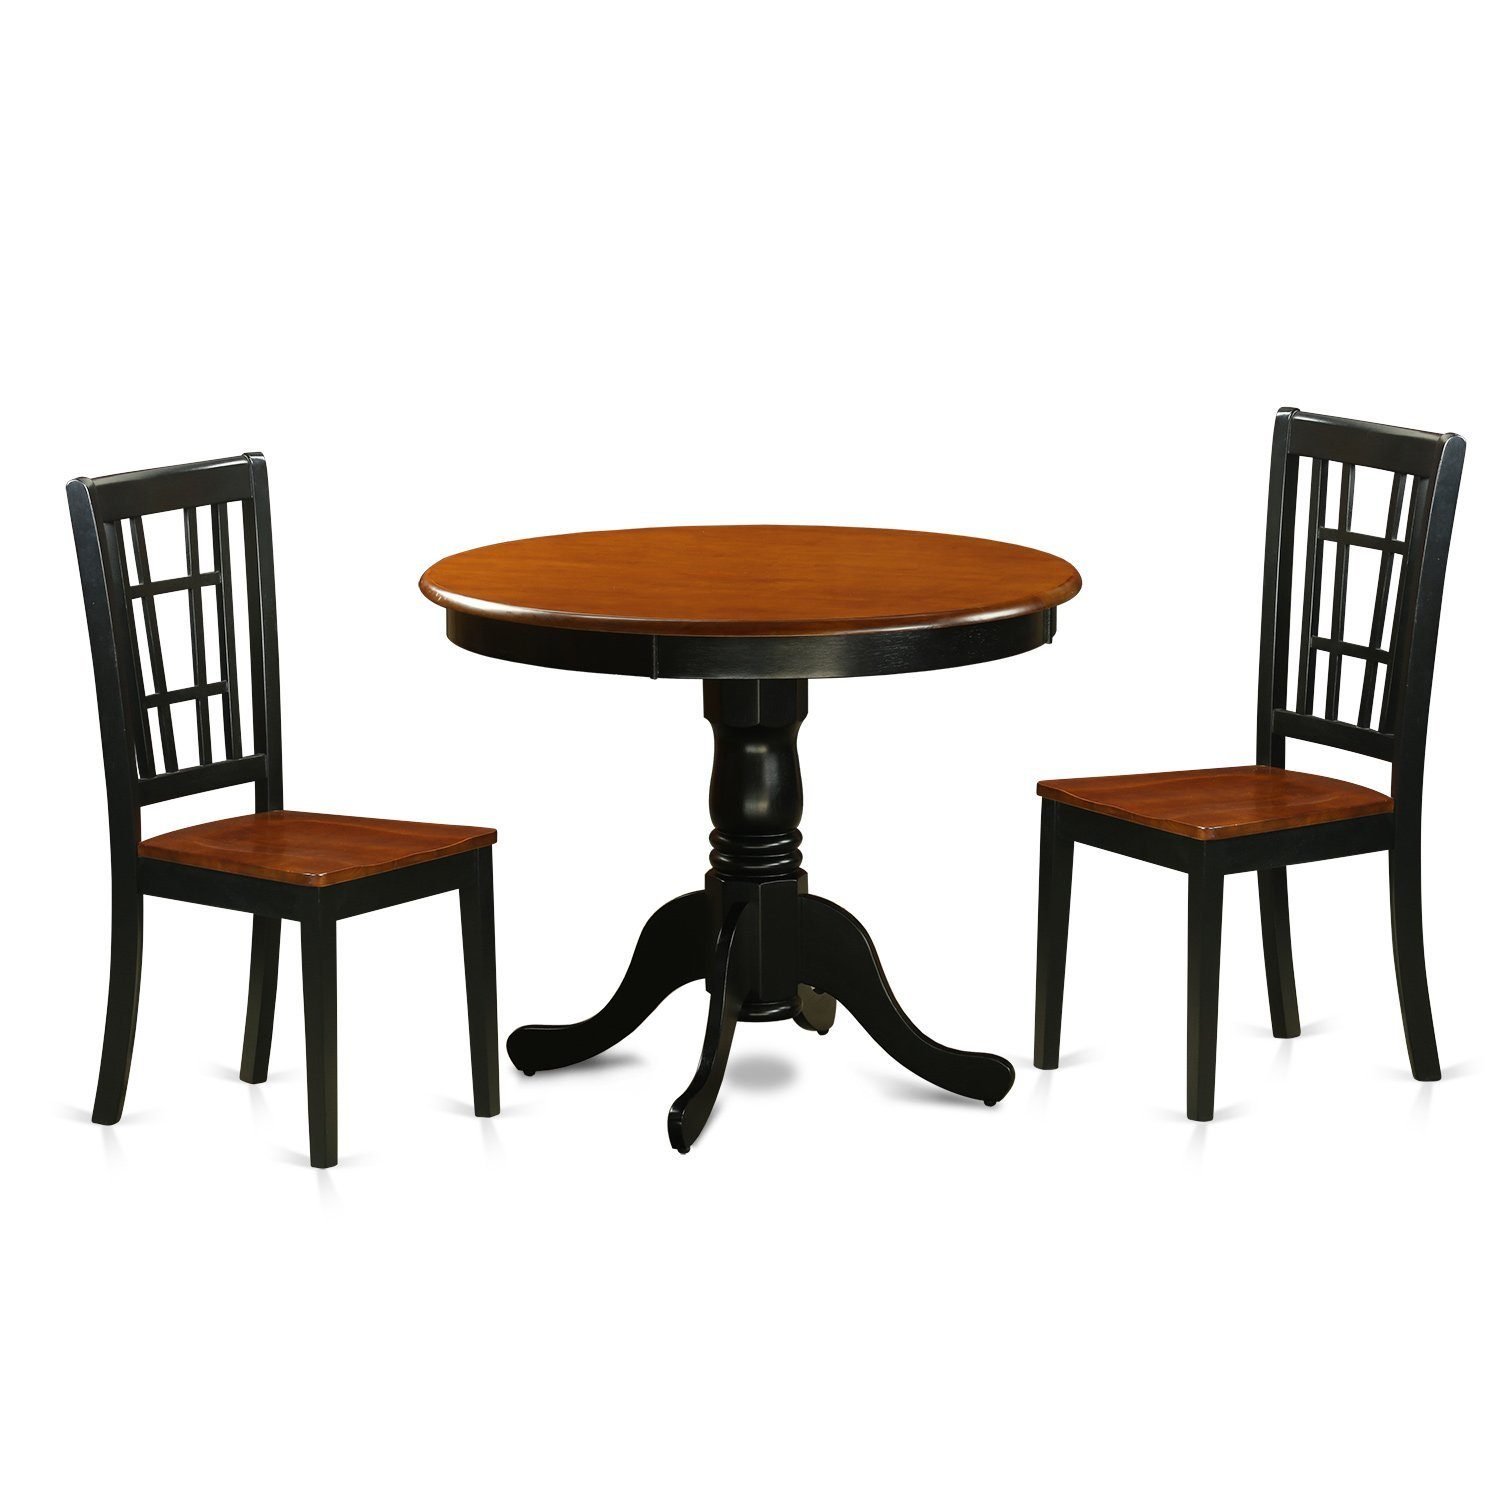 East West Furniture ANNI3-BLK-W 3 Piece Dining Table with 2 Wood Antique Chairs, Black/Cherry Finish